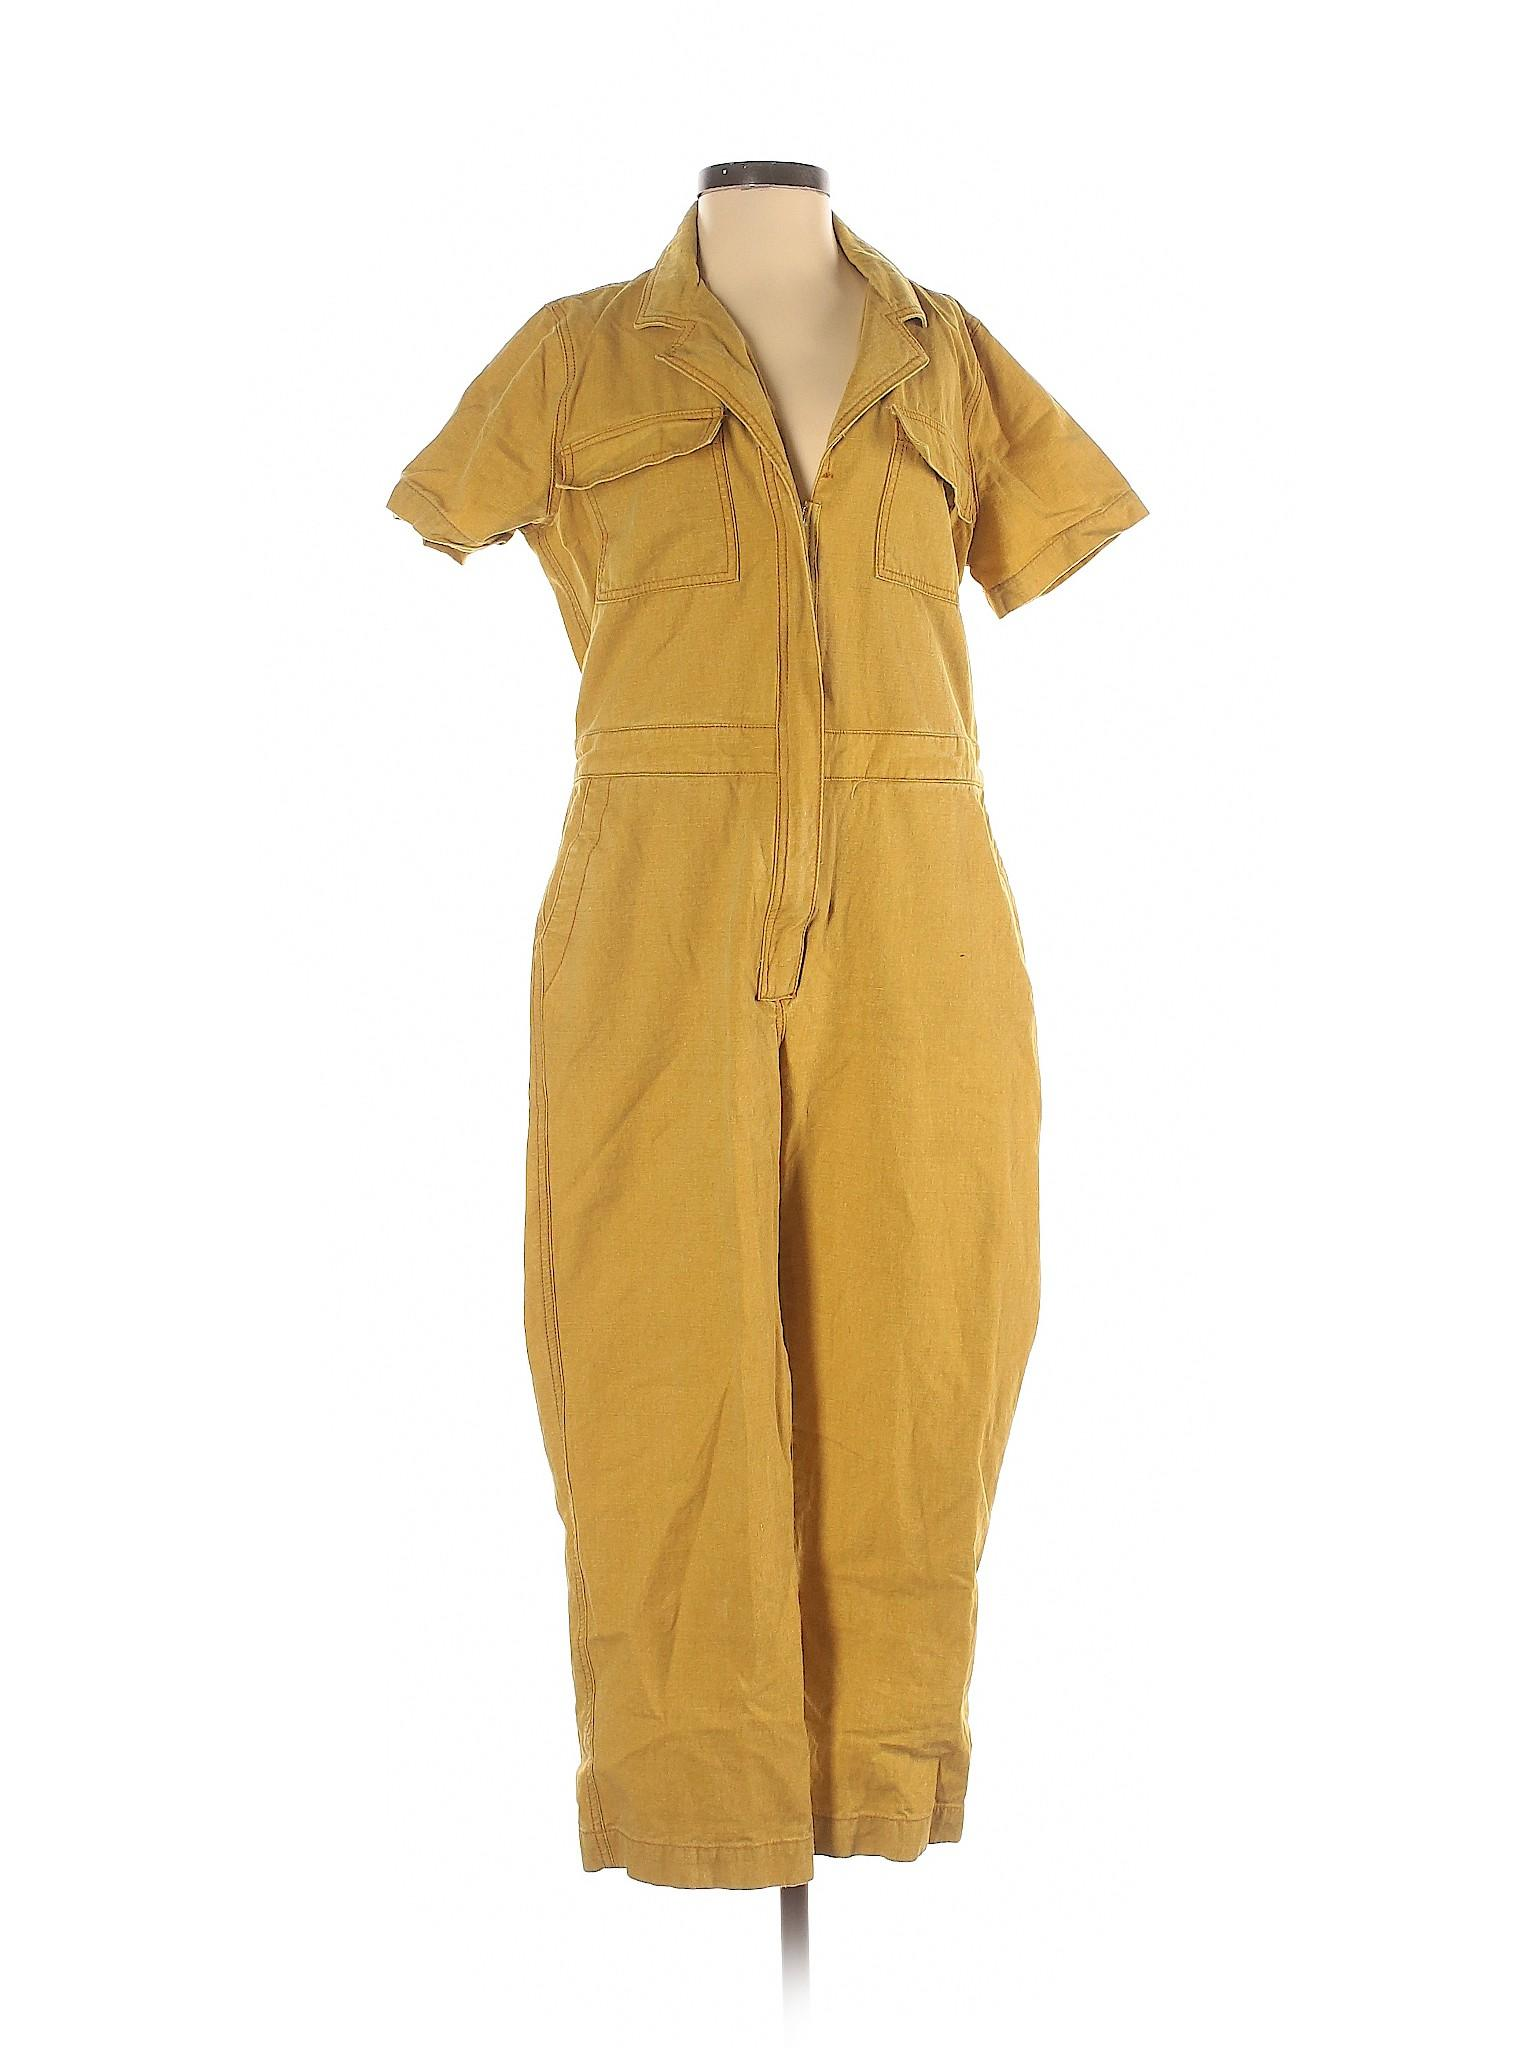 Moon River Jumpsuit, $33 ($10 off with our special link - click image!) @thredup.com